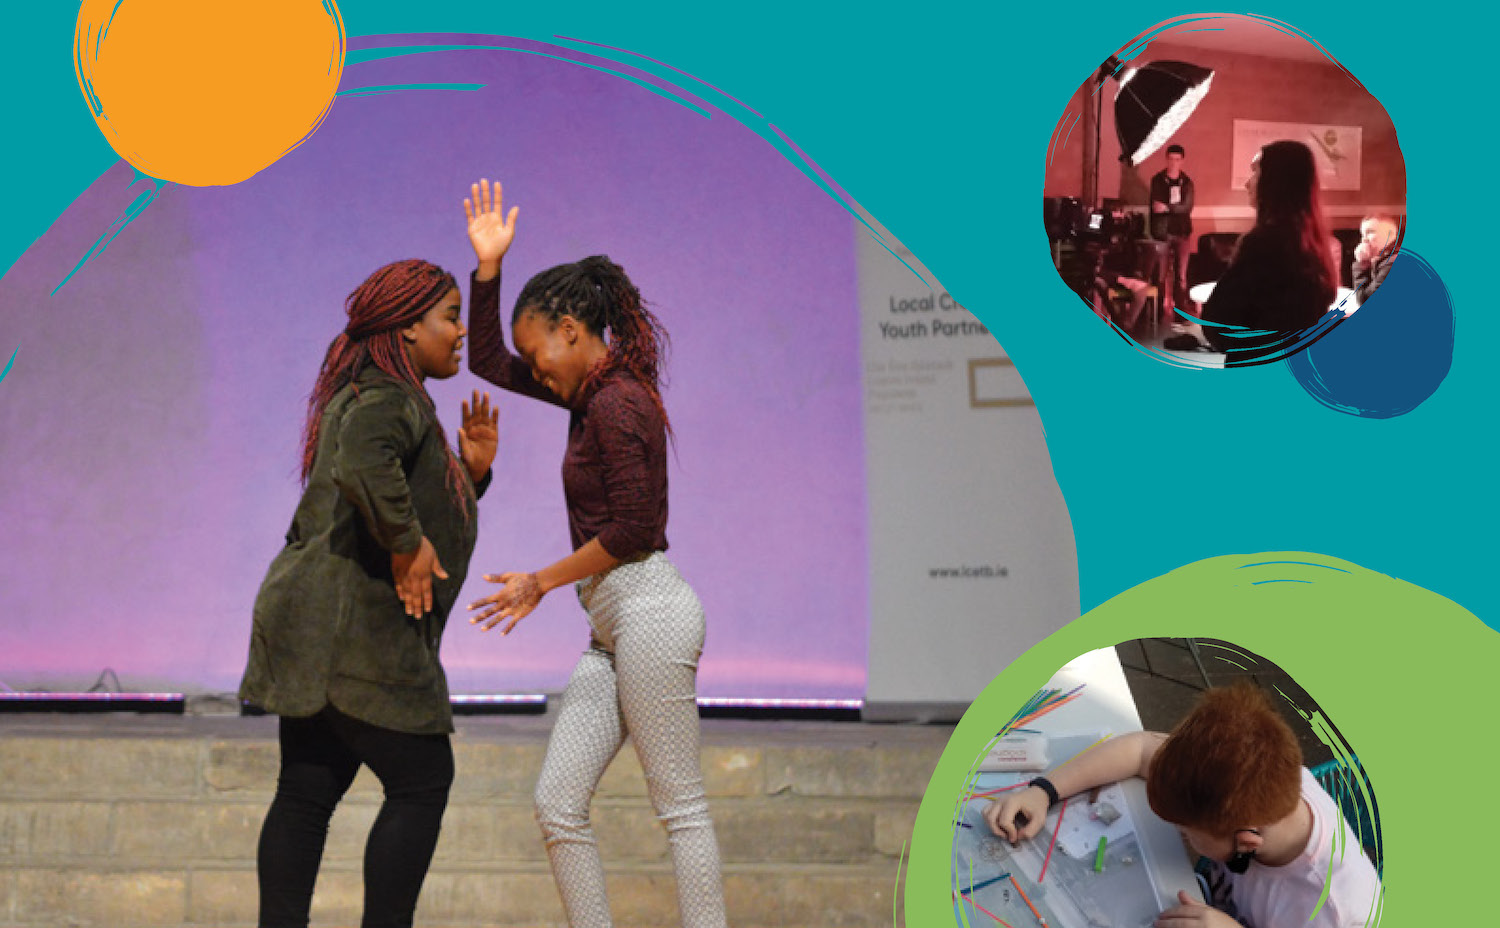 Creative Youth Partnership Strategic Plan - The Local Creative Youth Partnership has announced its first Strategic Plan to help develop creative opportunities for youths in their communities.